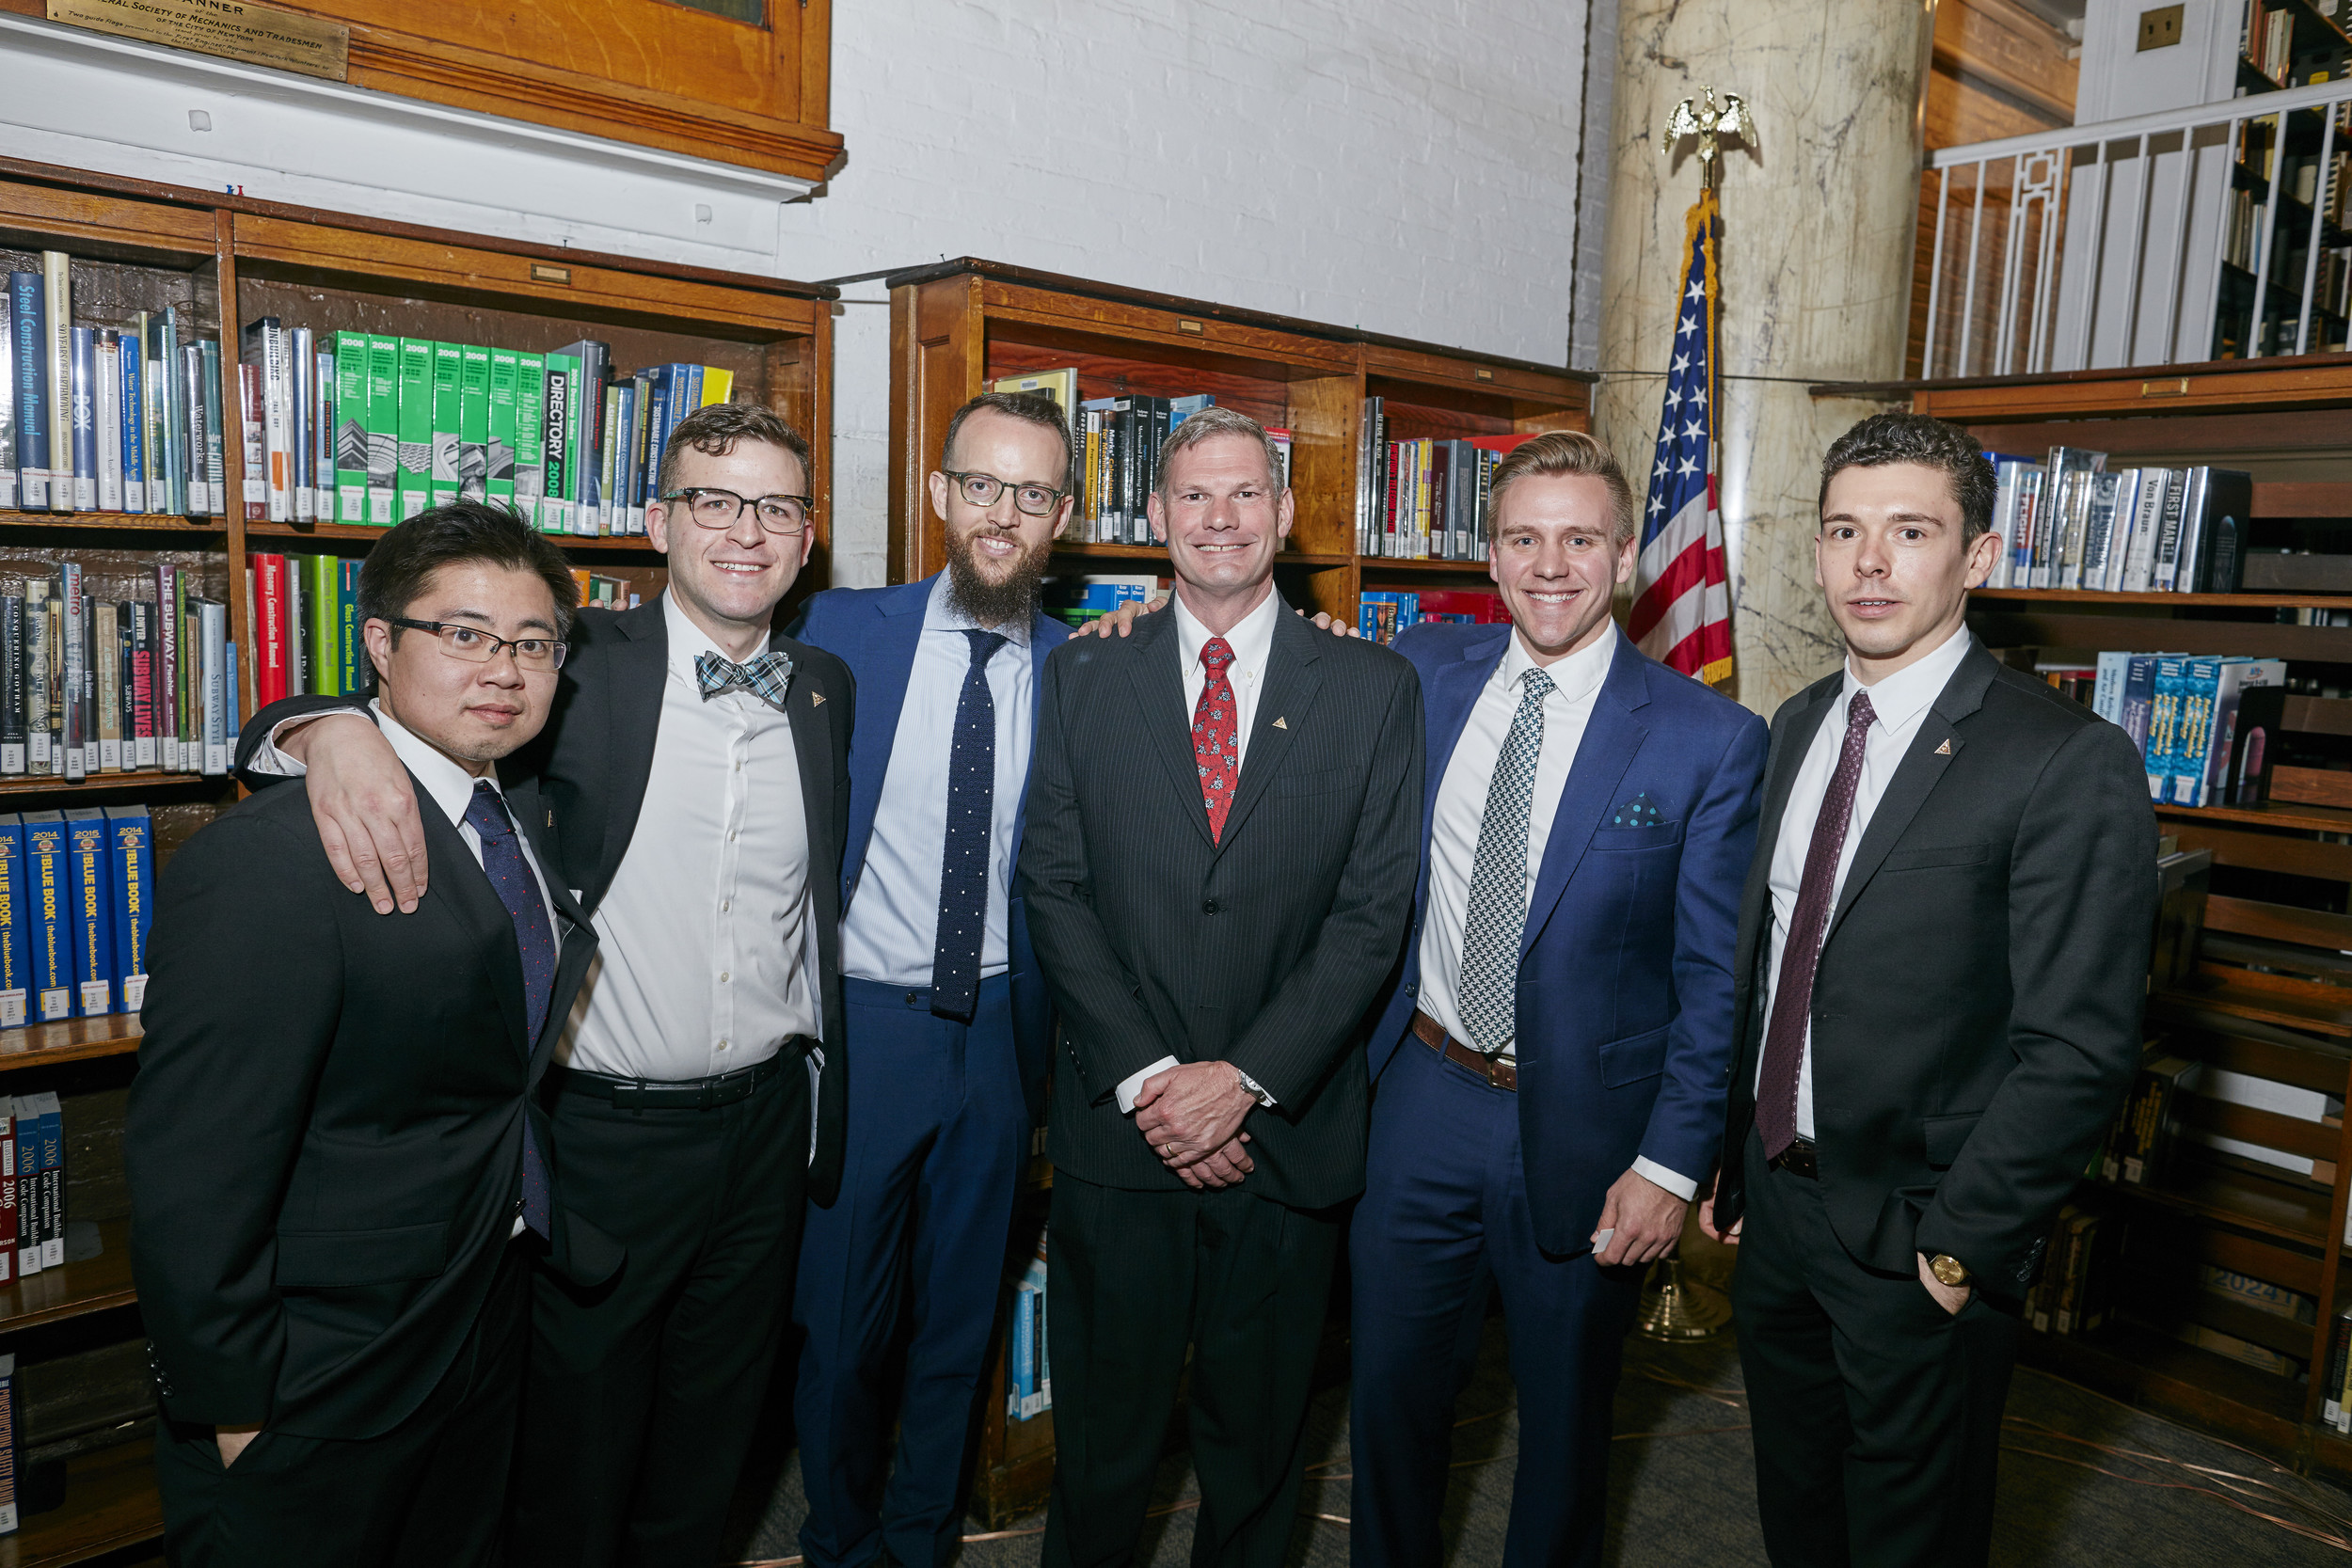 Left to right: Daniel Mooncai - Trustee, Luke Cox-Bien, Trustee, Nicholas Manousos - Vice President, Lance Maxwell - Instructor, Stephen Eagle - Director of Education, Nathan Mosquera - Instructor